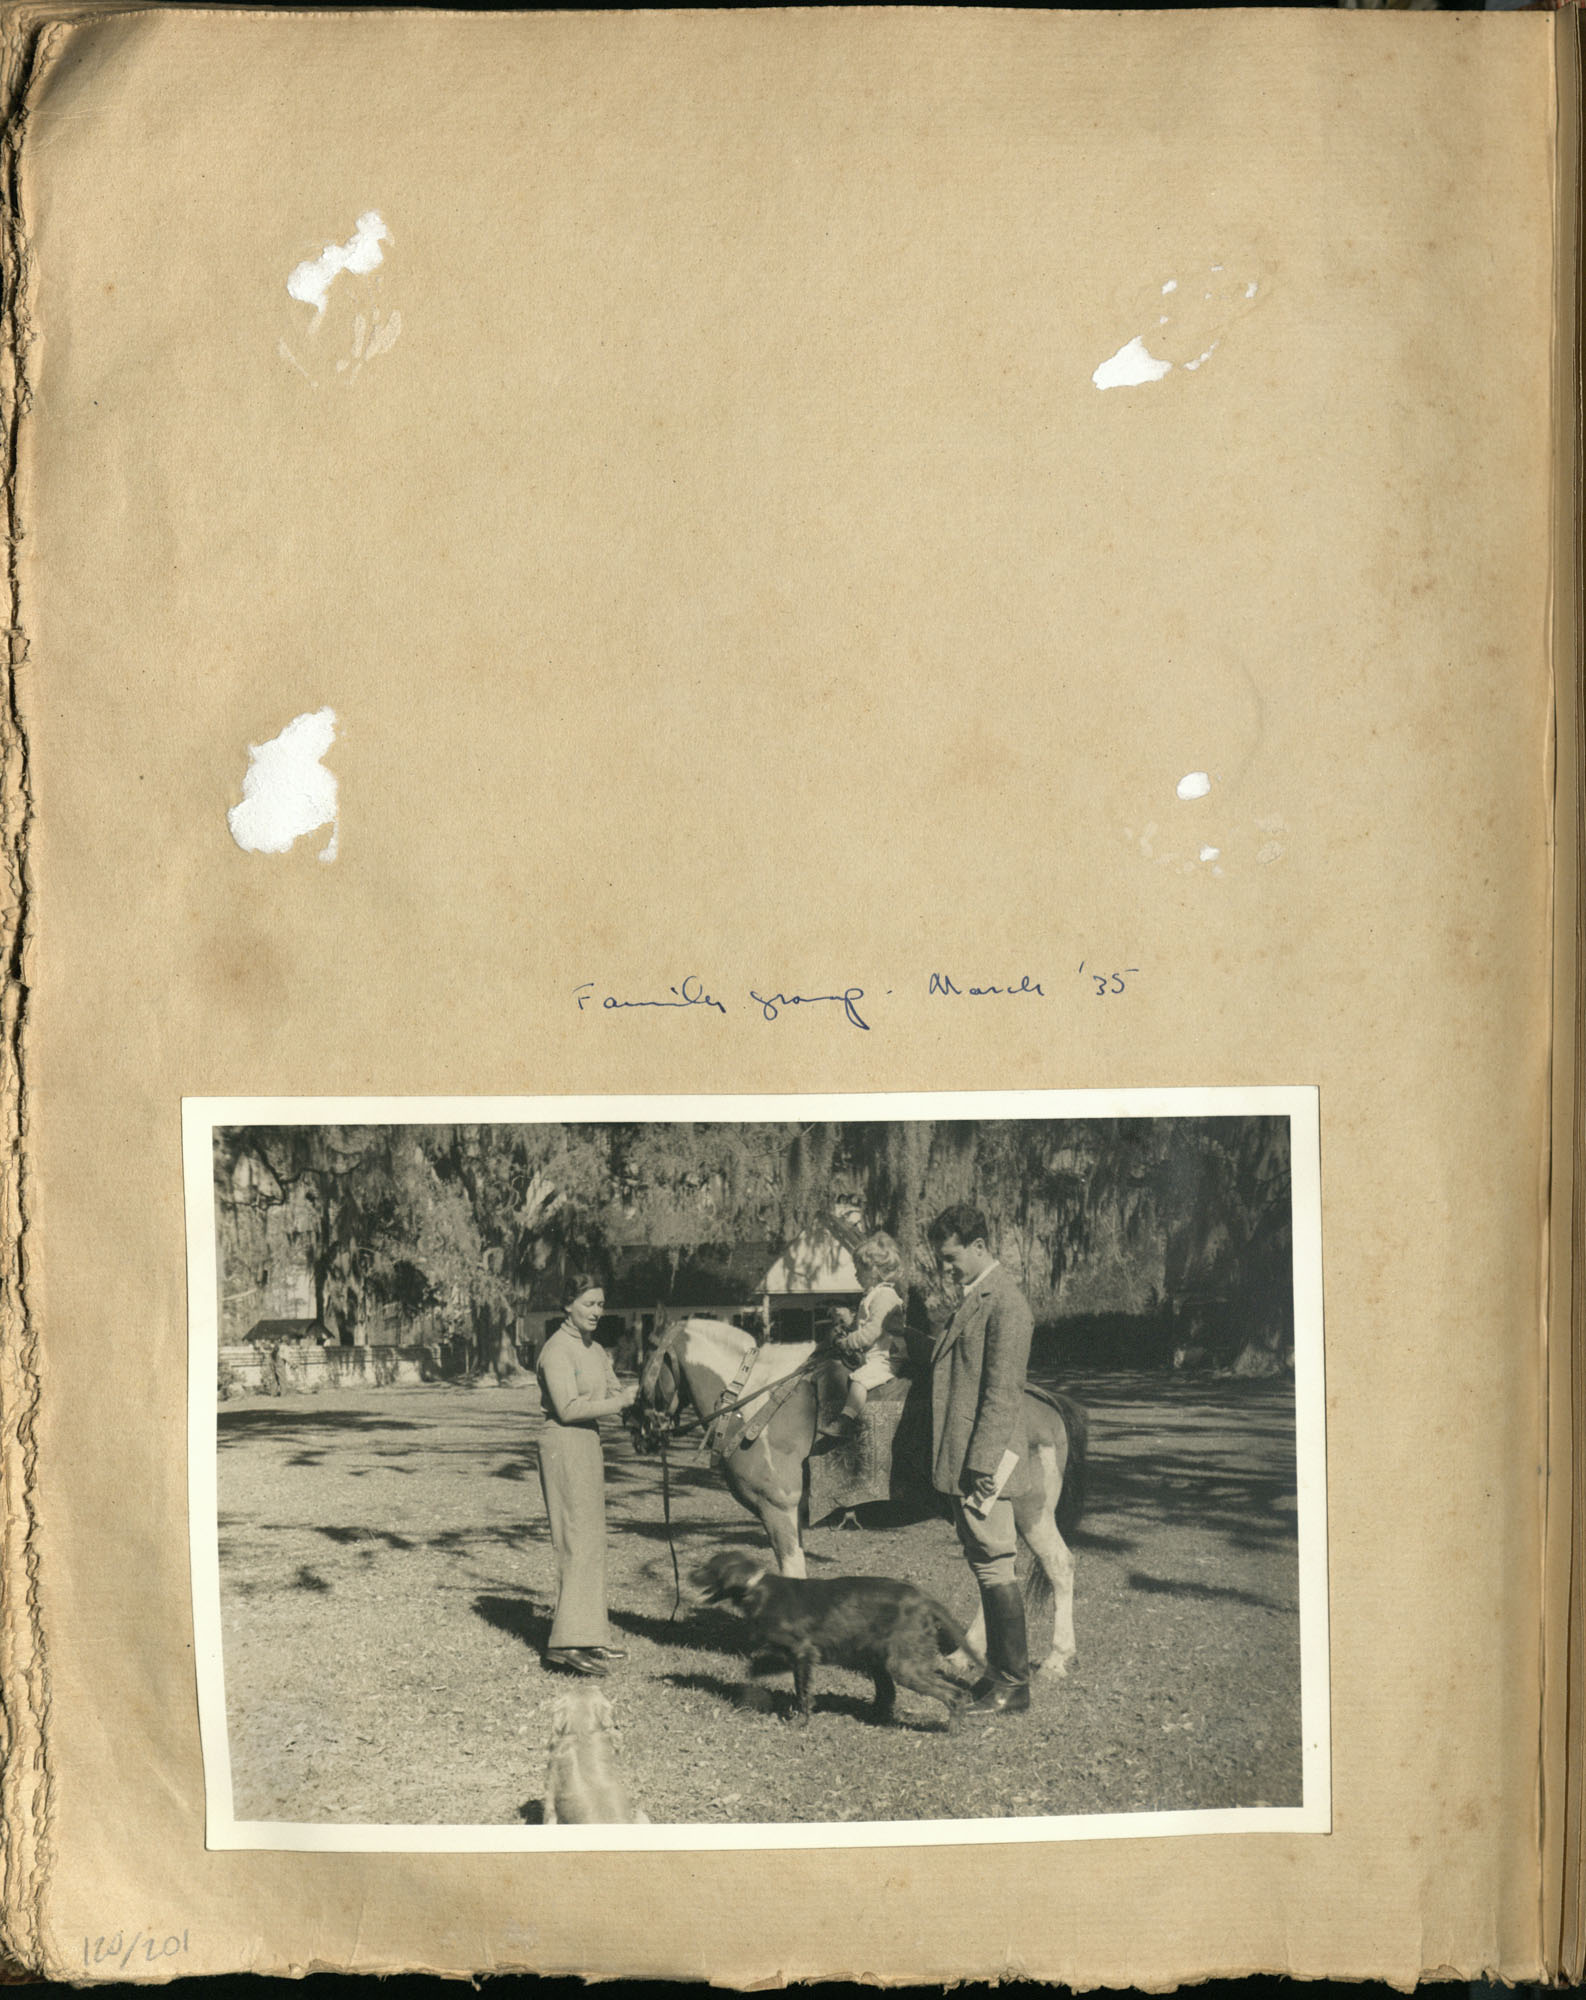 Early Medway and travels album, 1929-1937, page 120